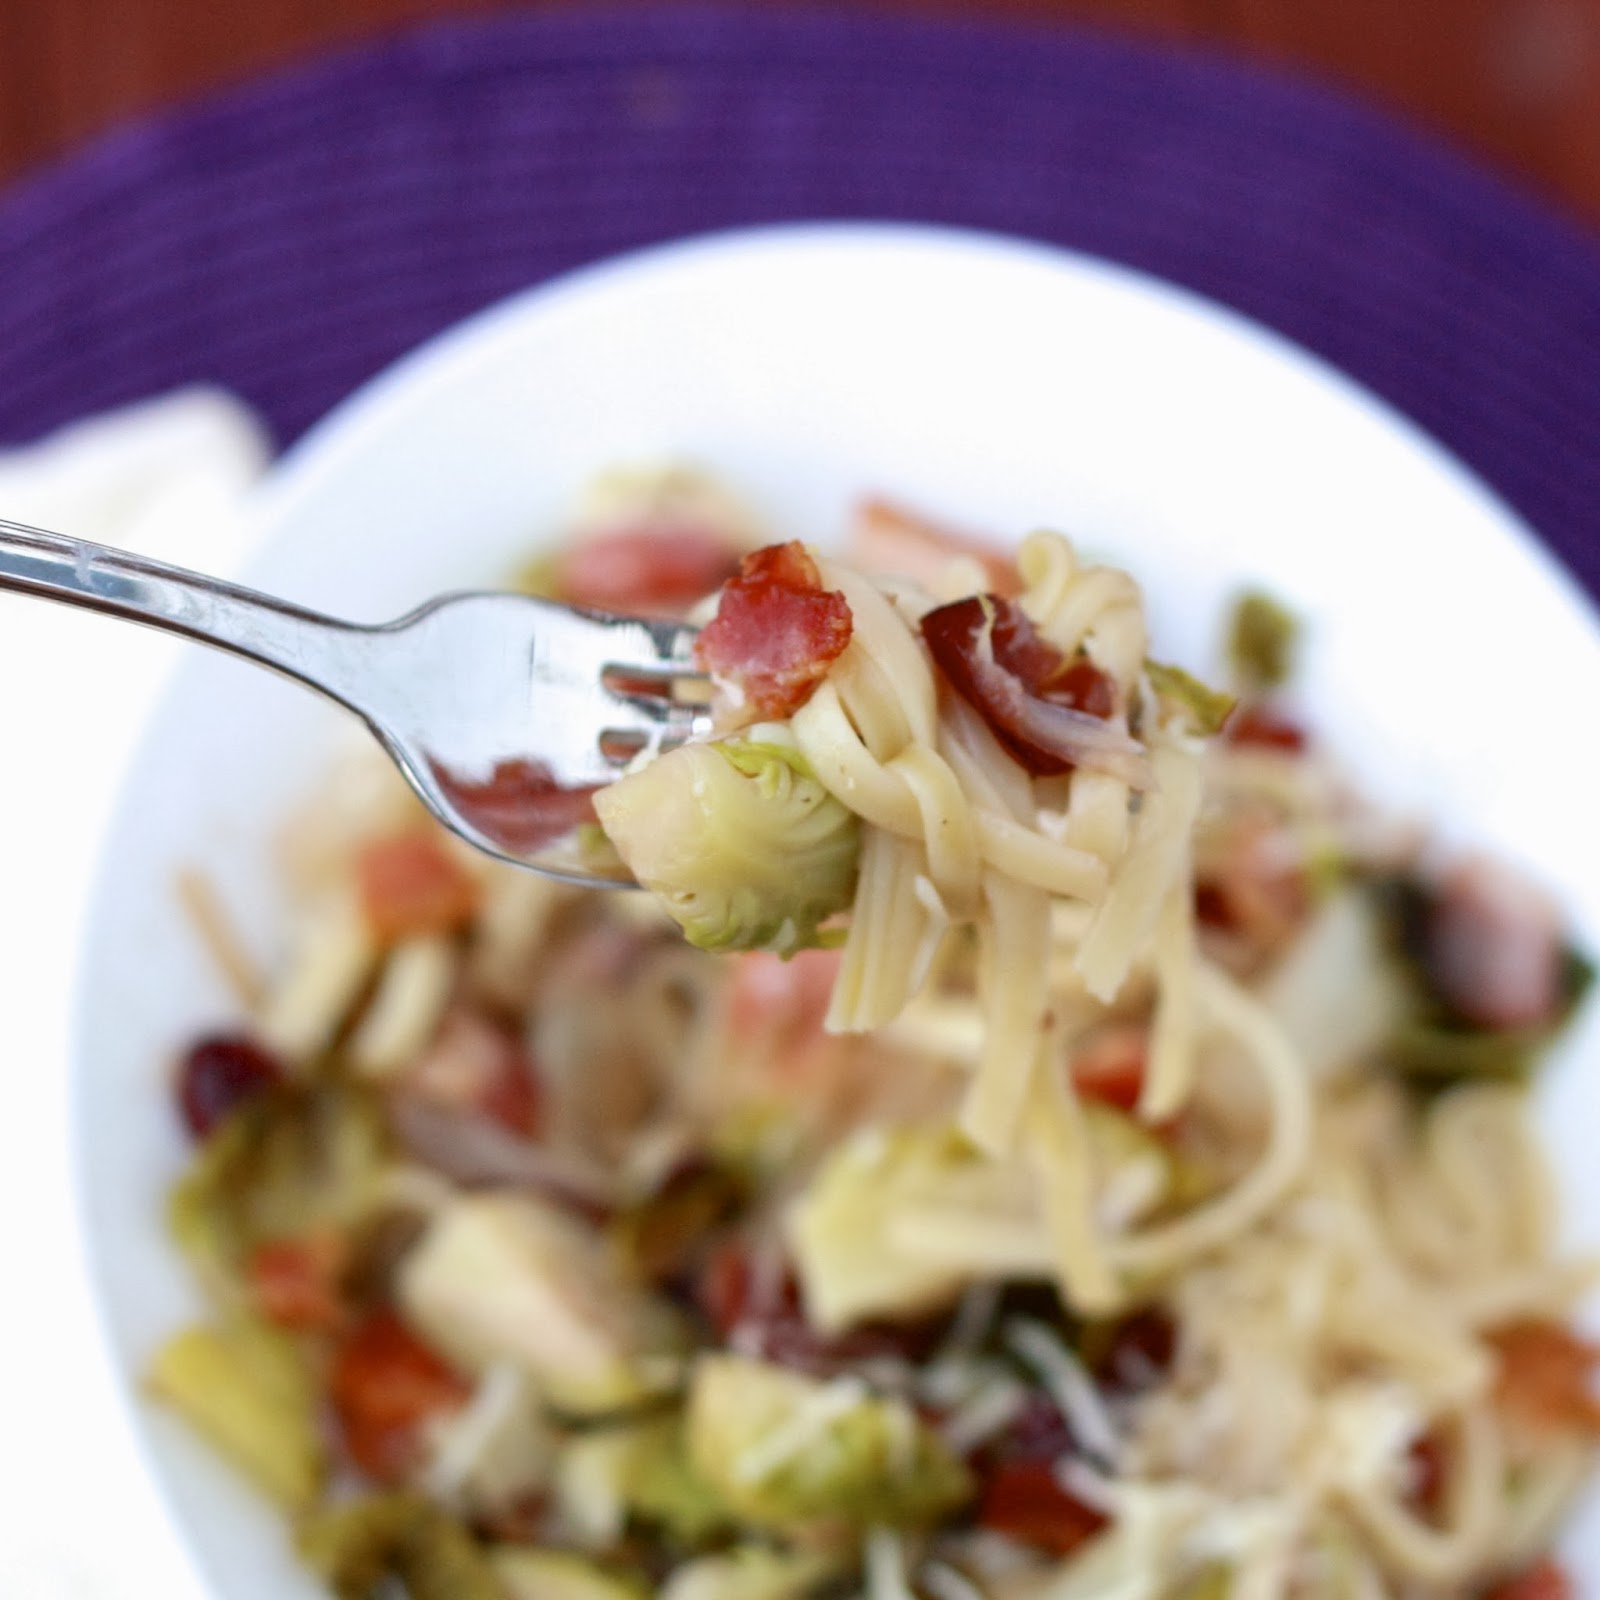 linguine with brussels sprouts